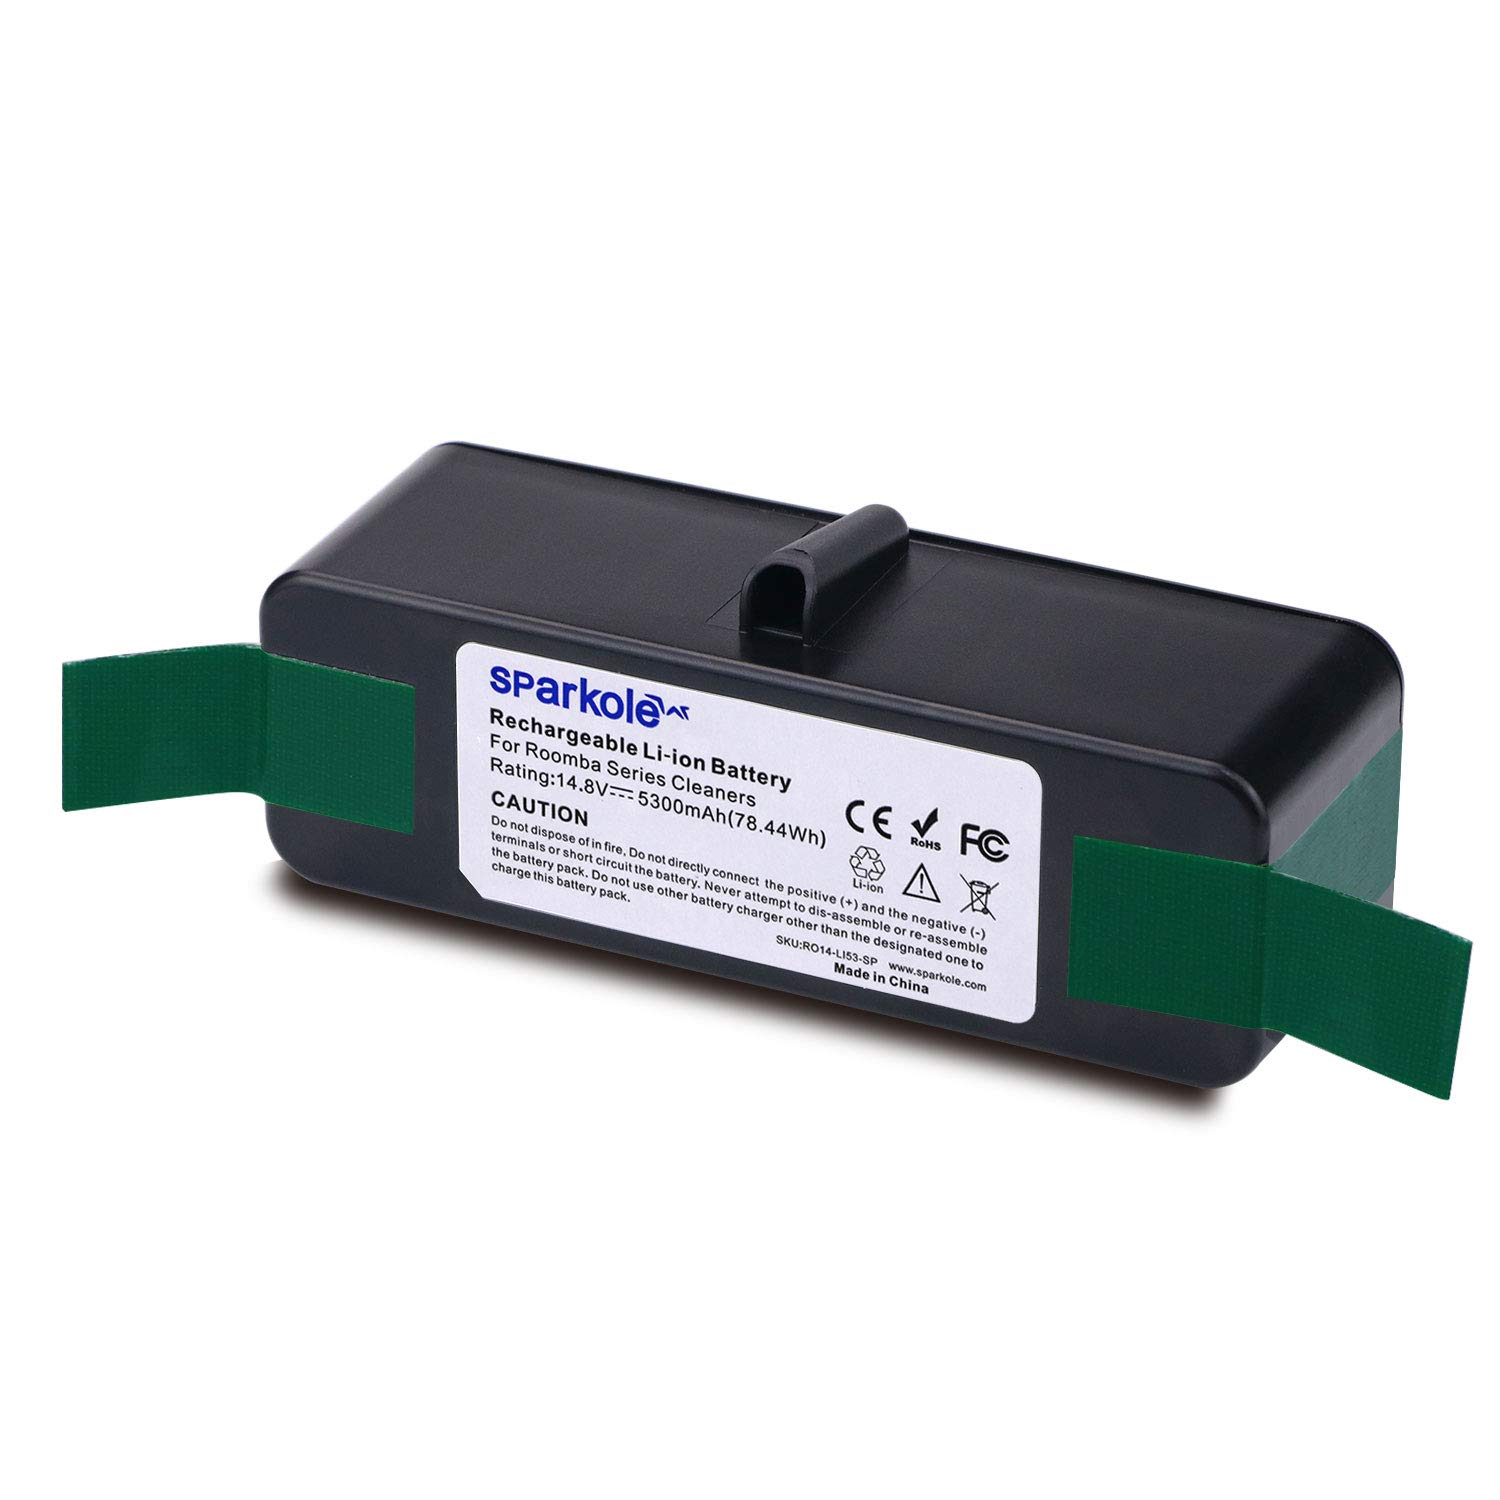 SPARKOLE 5300mAh Extended Life Lithium Ion Battery Compatible with iRobot Roomba 500 600 700 800 Series 675 880 770 650 655 595 870 890 860 805 850 780 790 760 630 620 645 671 531 585 561 560 550 891